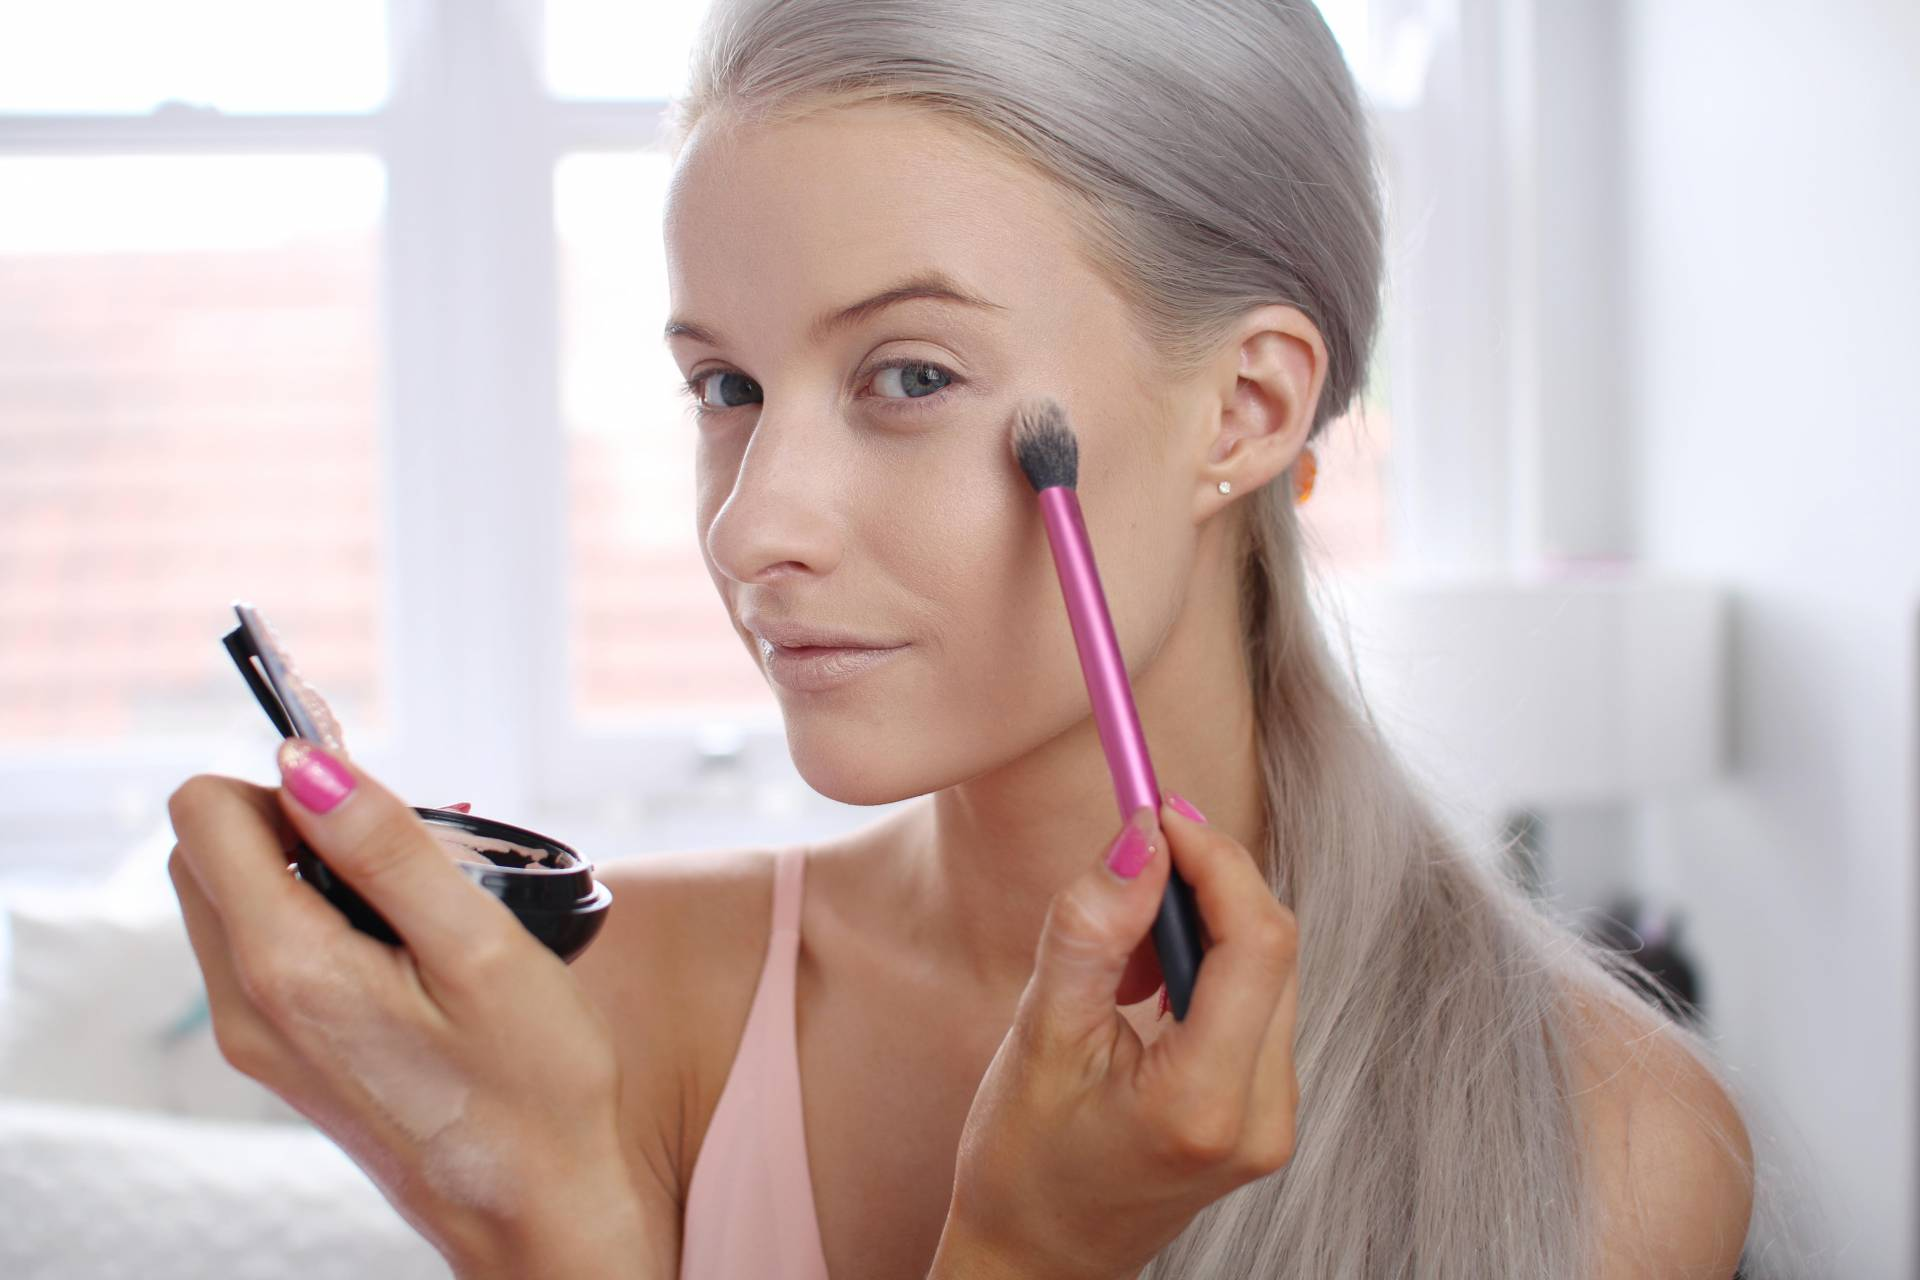 Four Tips for Glowing Radiance - Inthefrow